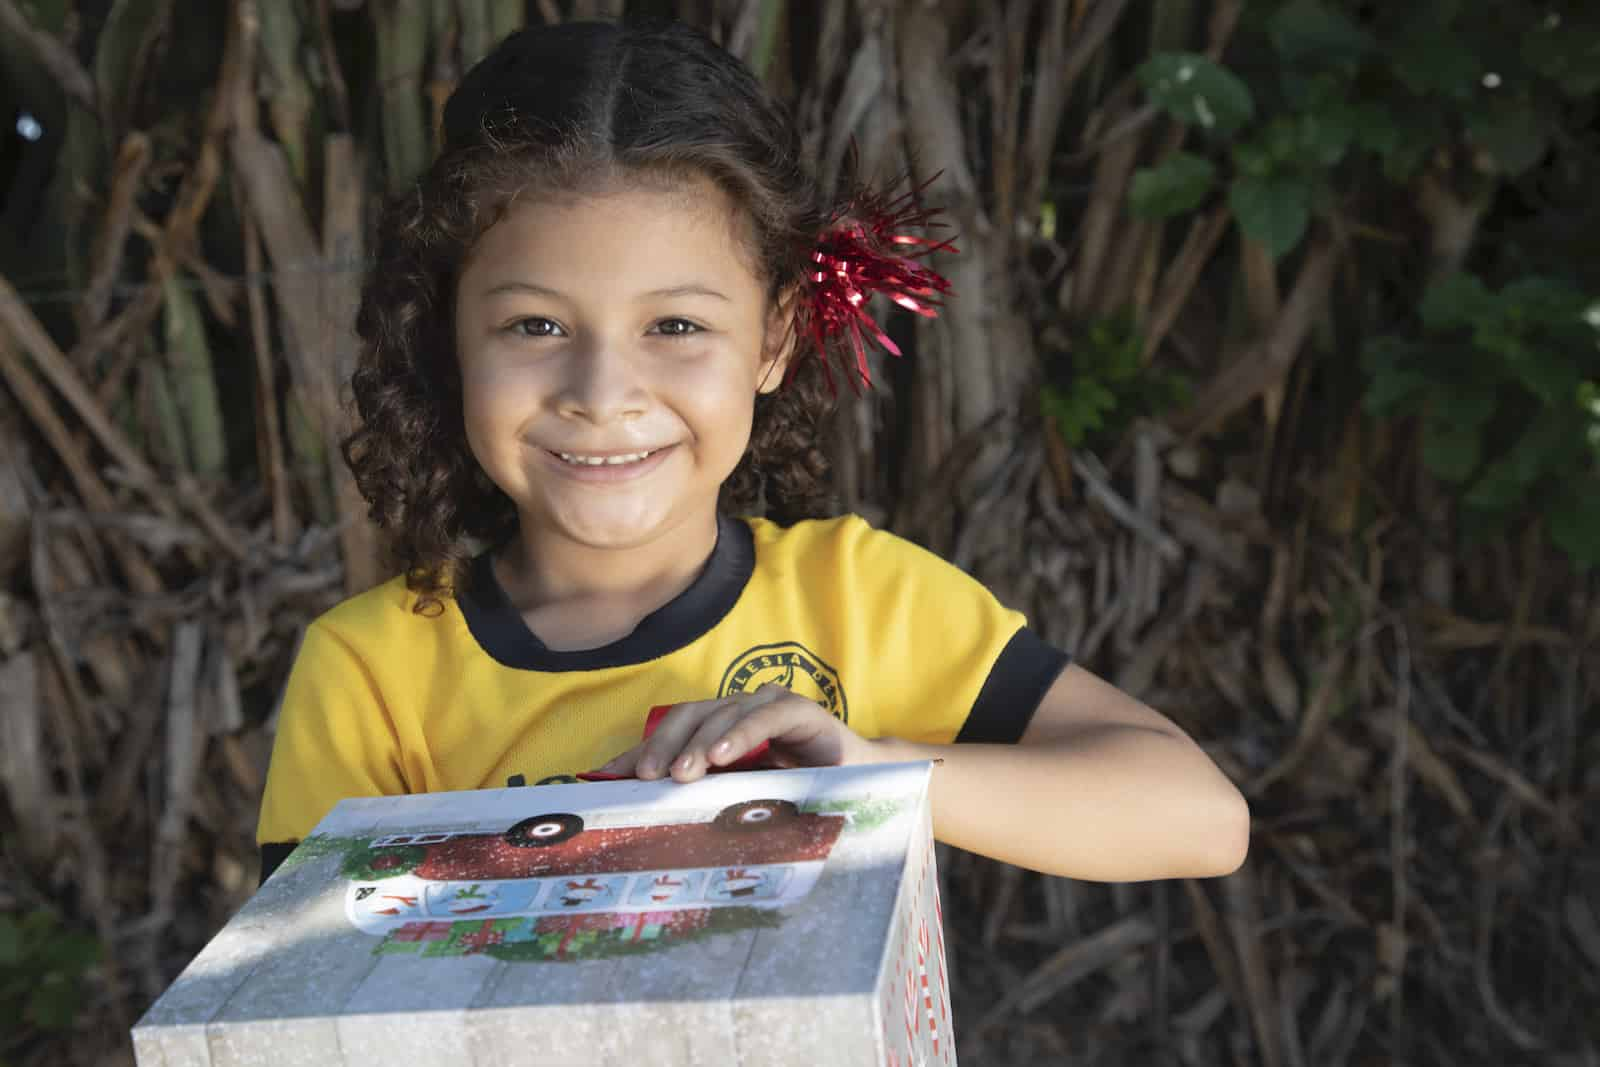 A girl in a yellow shirt holds a Christmas gift.